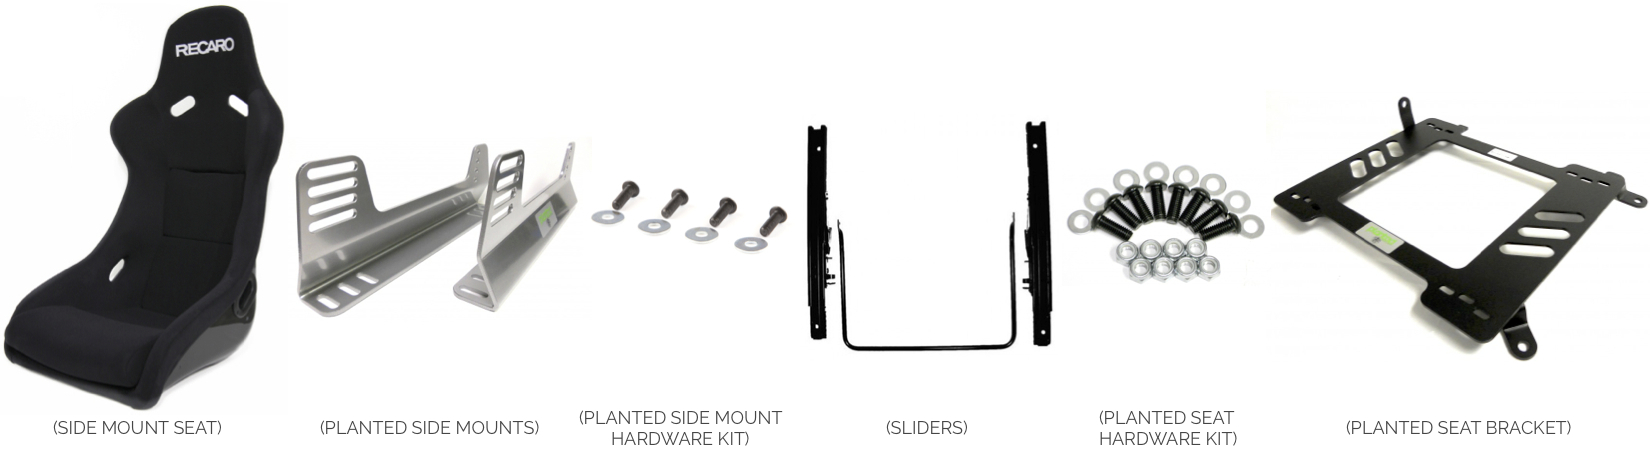 Side Mount Seat with Sliders - Installation Instructions